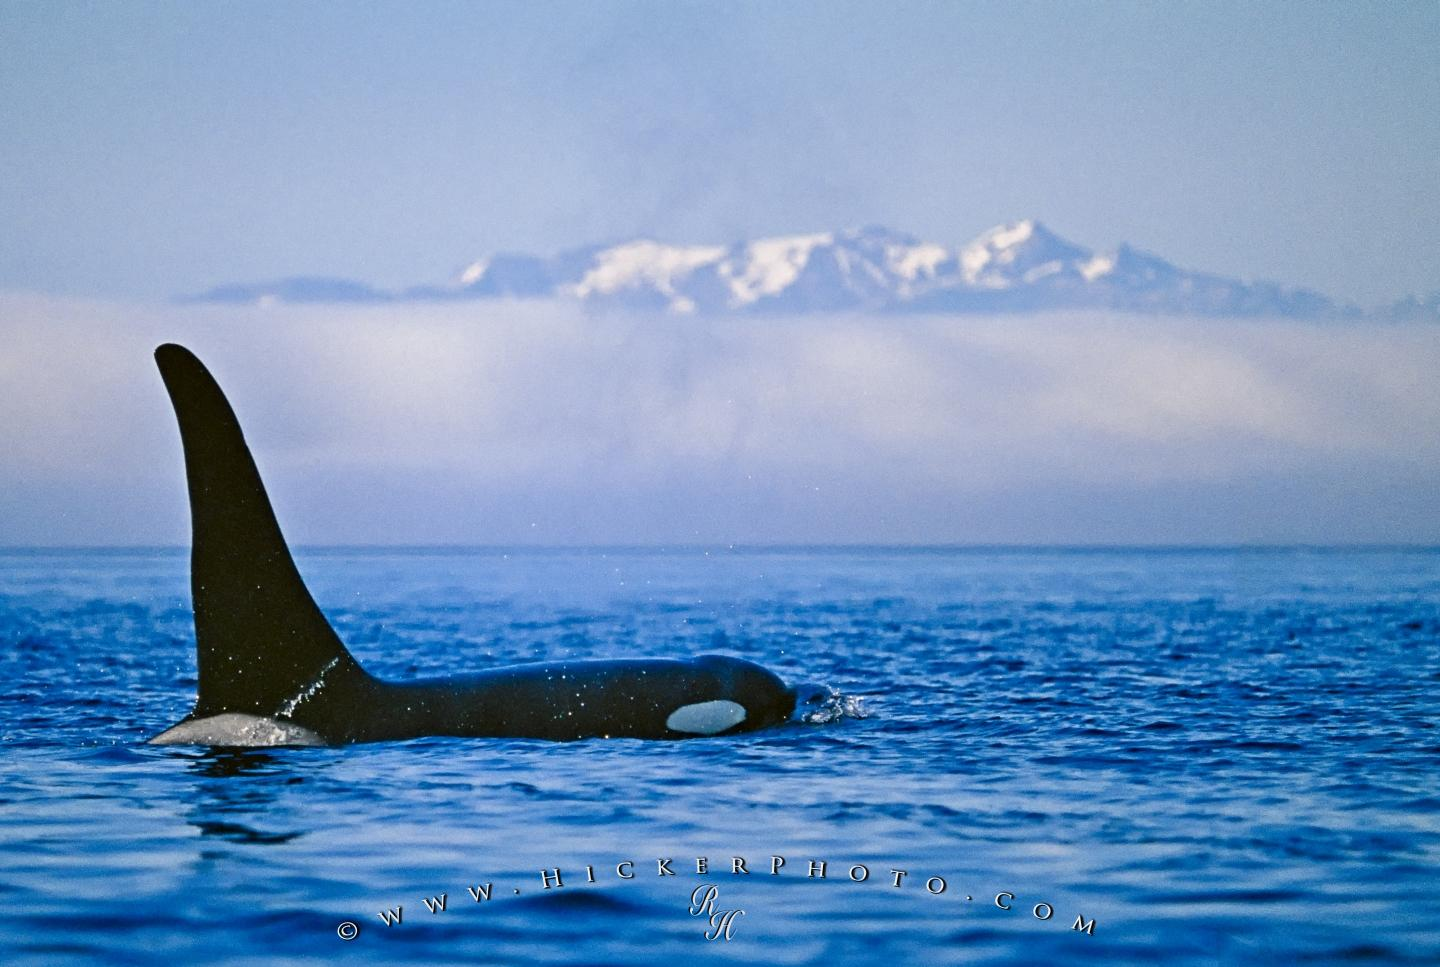 Free wallpaper background killer whale scientific name orcinus orca free wallpaper size 1440px altavistaventures Images